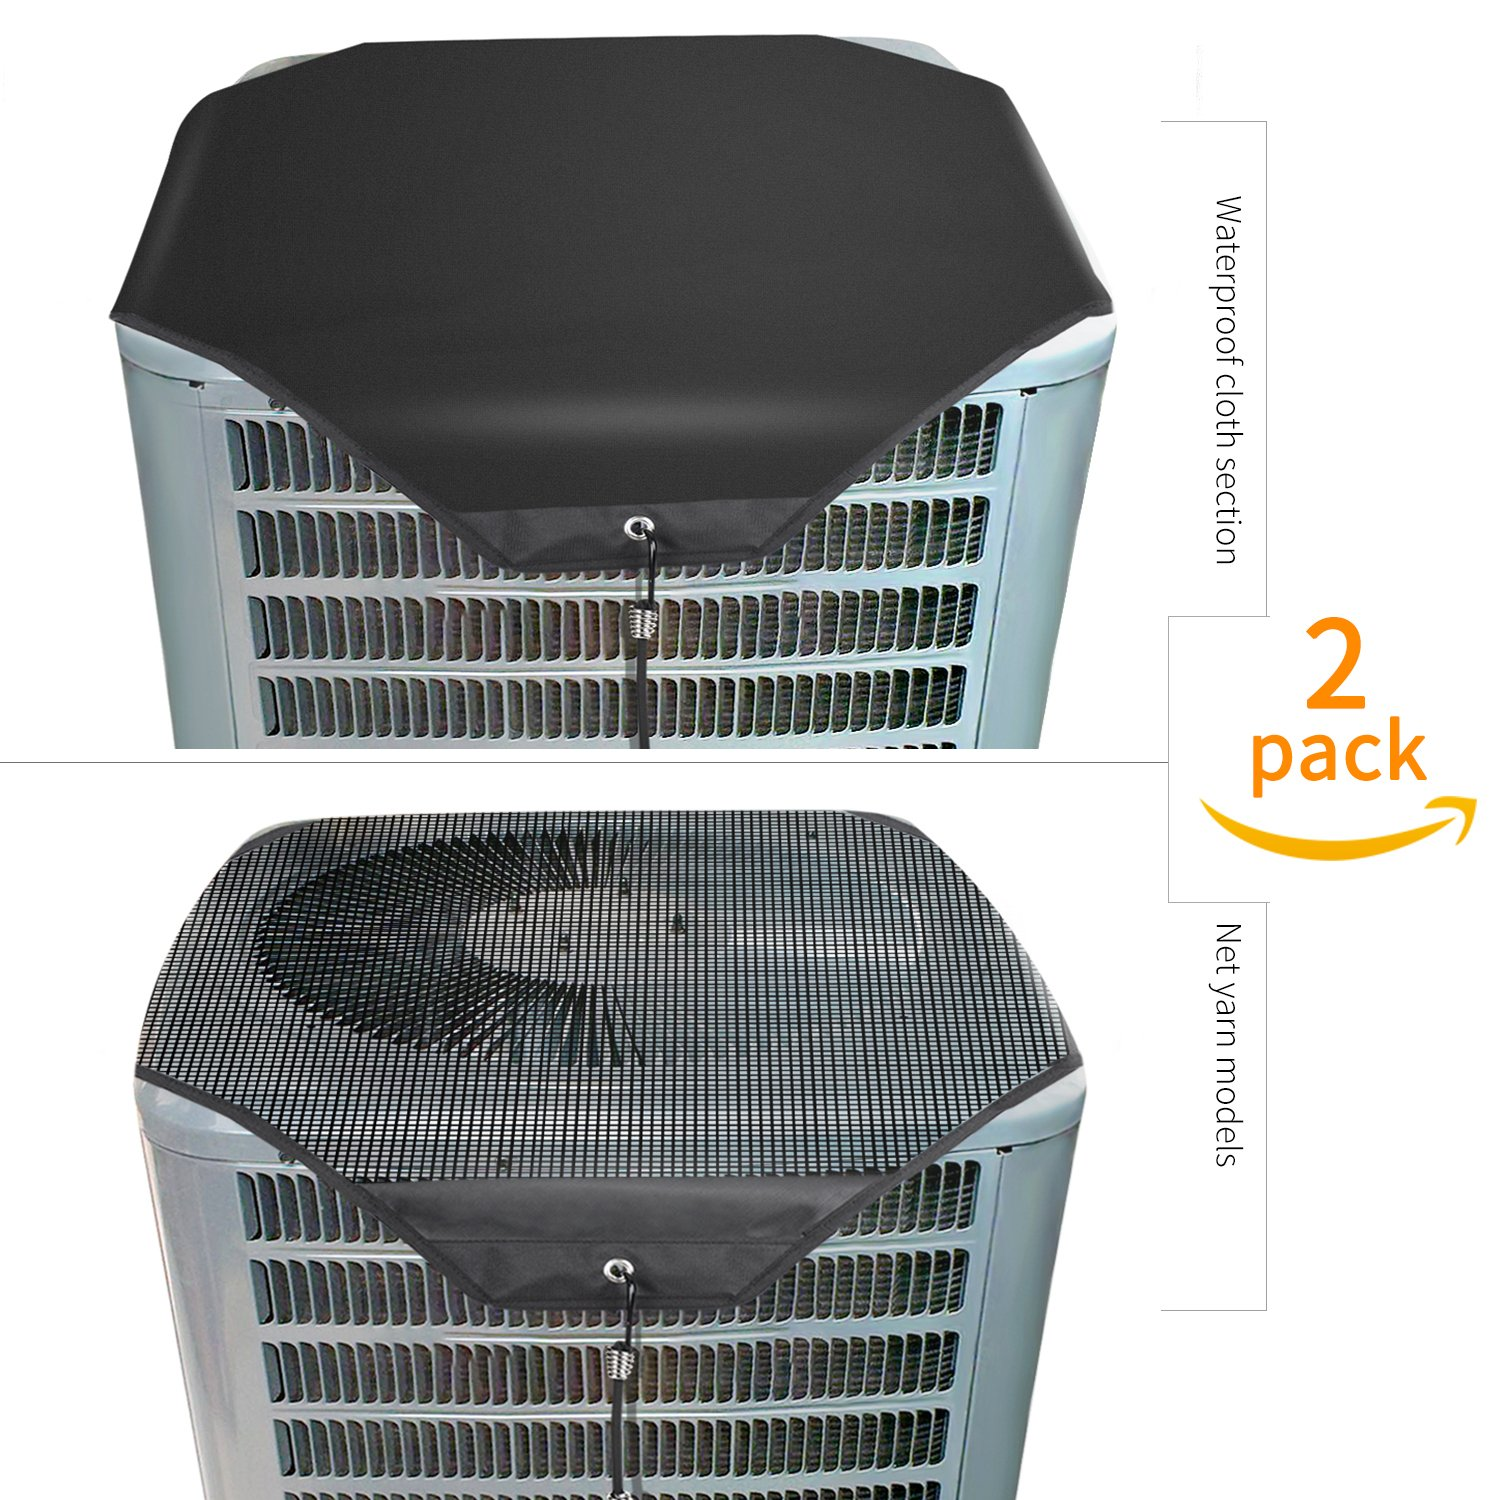 Lanlin Ac Unit Cover - Conditioner Summer Top Air Conditioner Leaf Guard Air Conditioner Cover for Outside Units (Mesh, 28×28) 28×28)